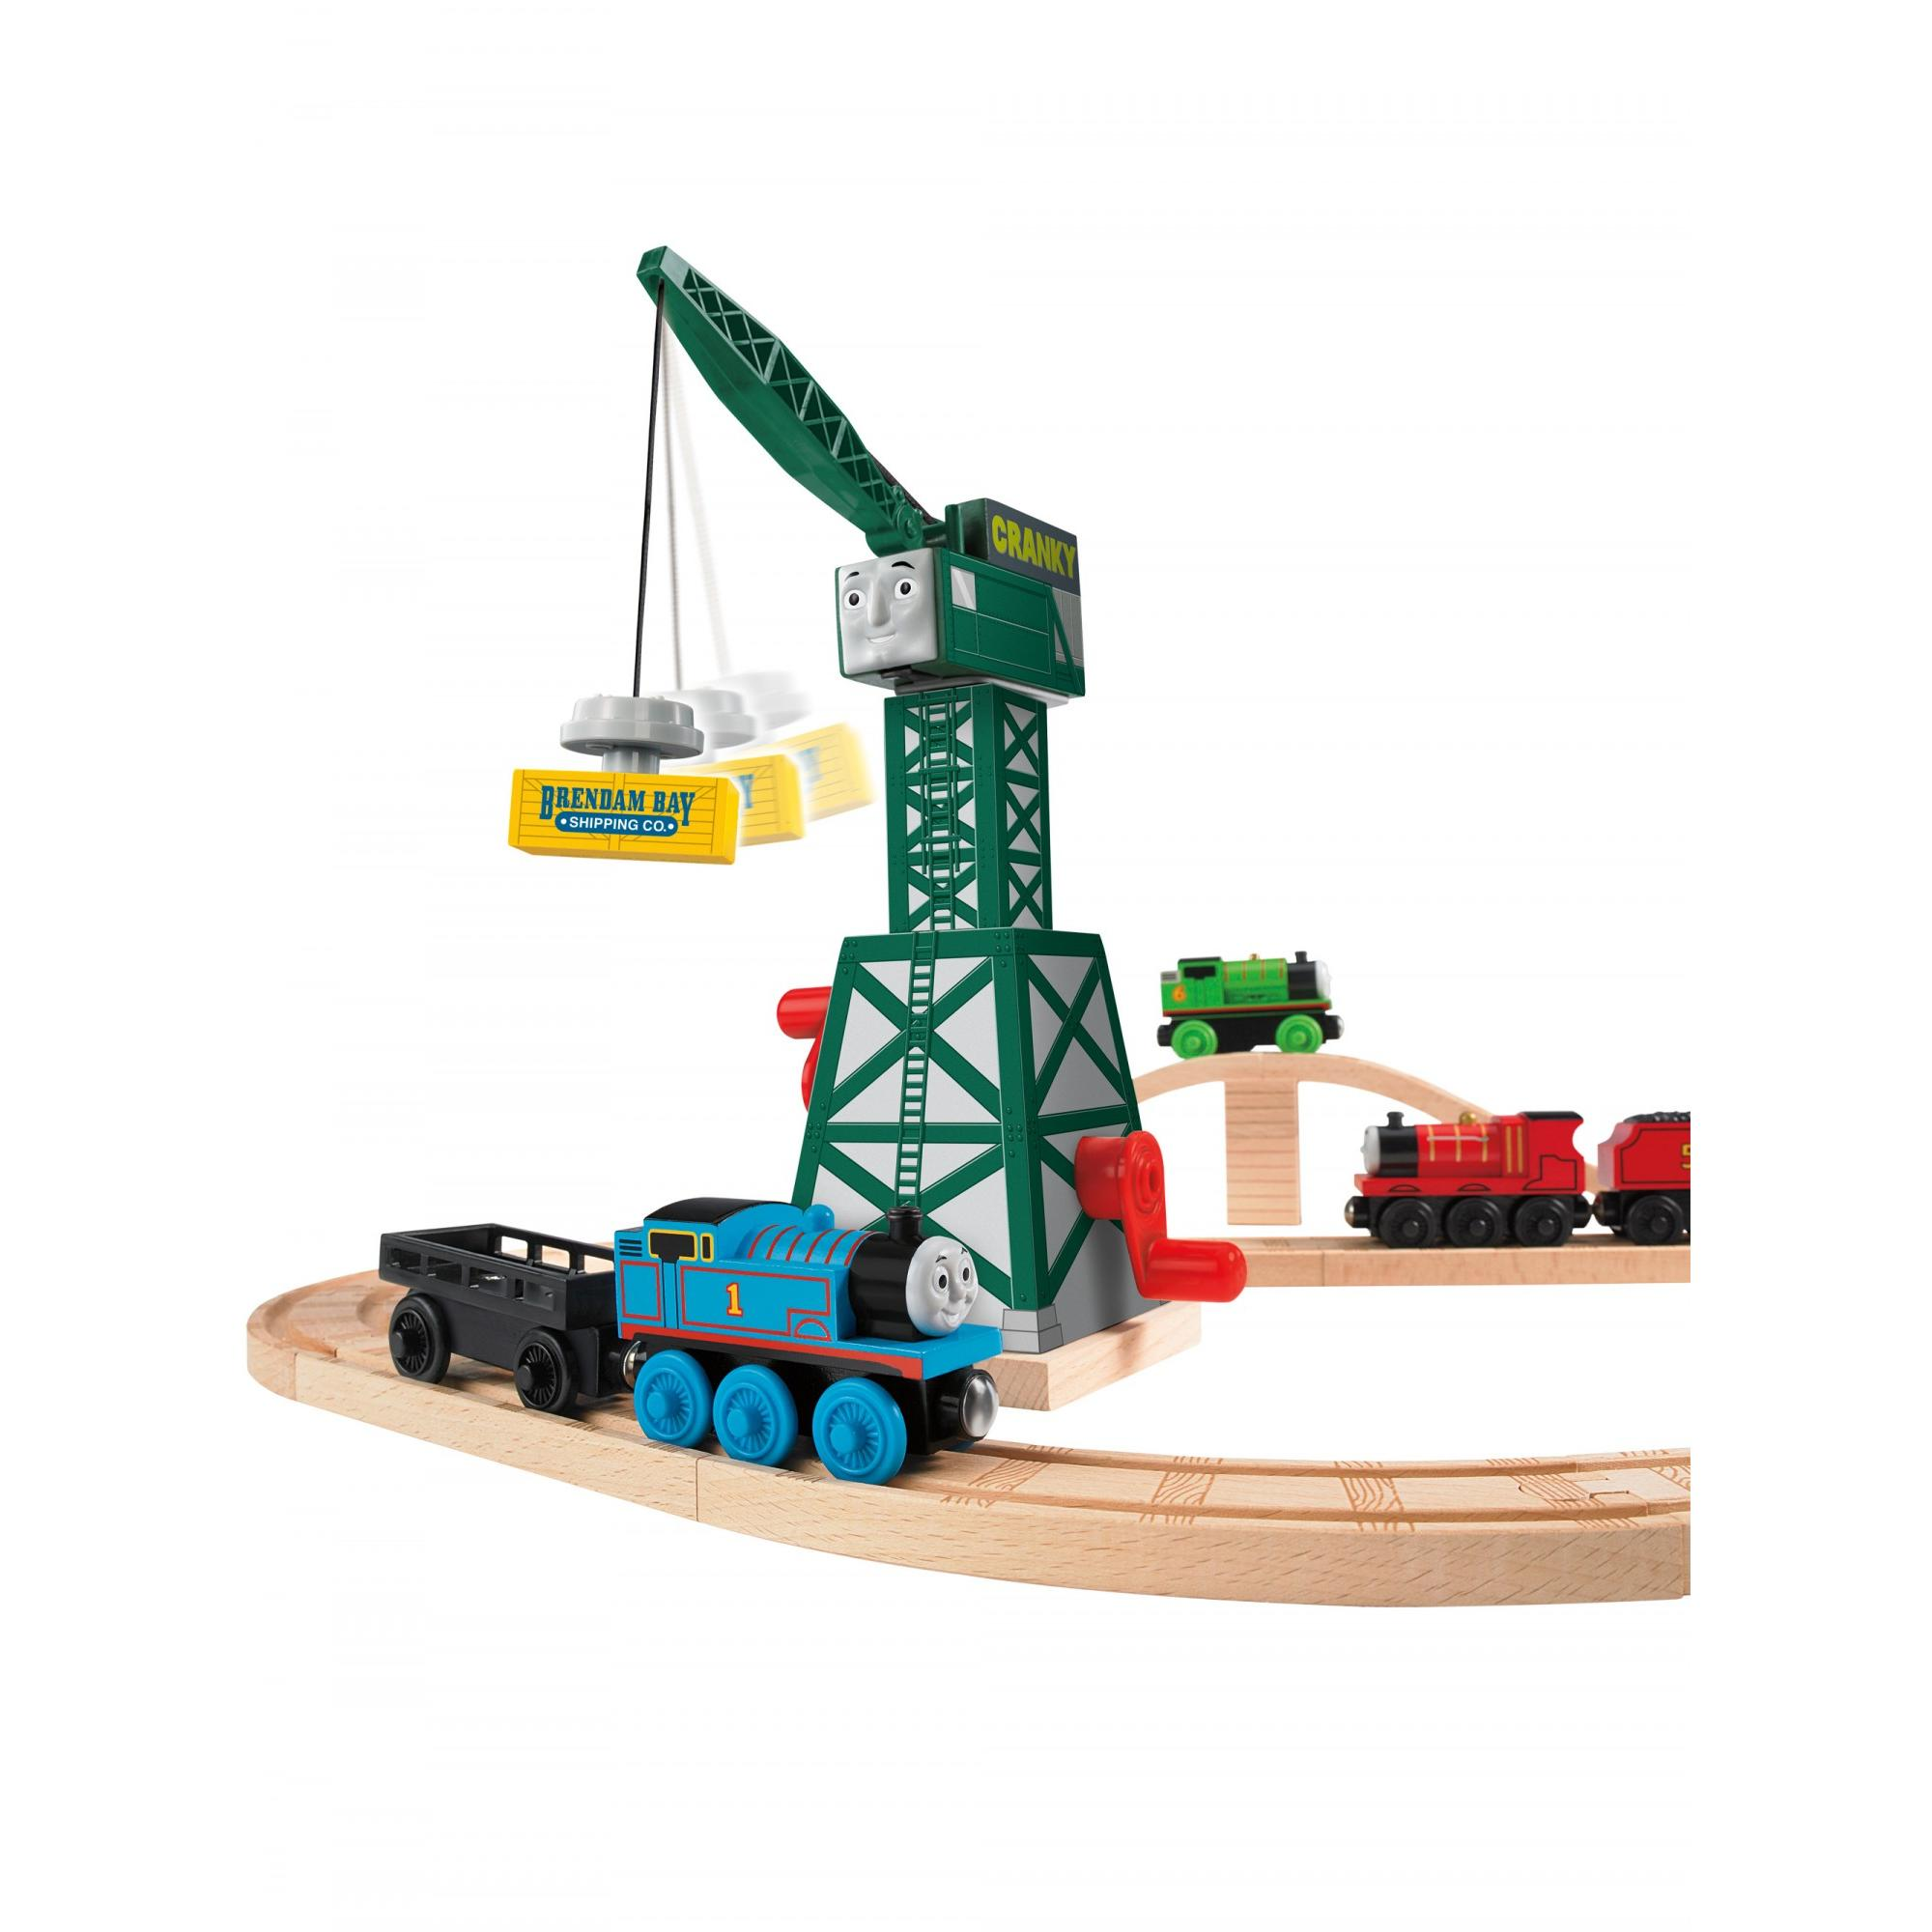 Thomas & Friends Wooden Railway Cranky the Crane by FISHER PRICE